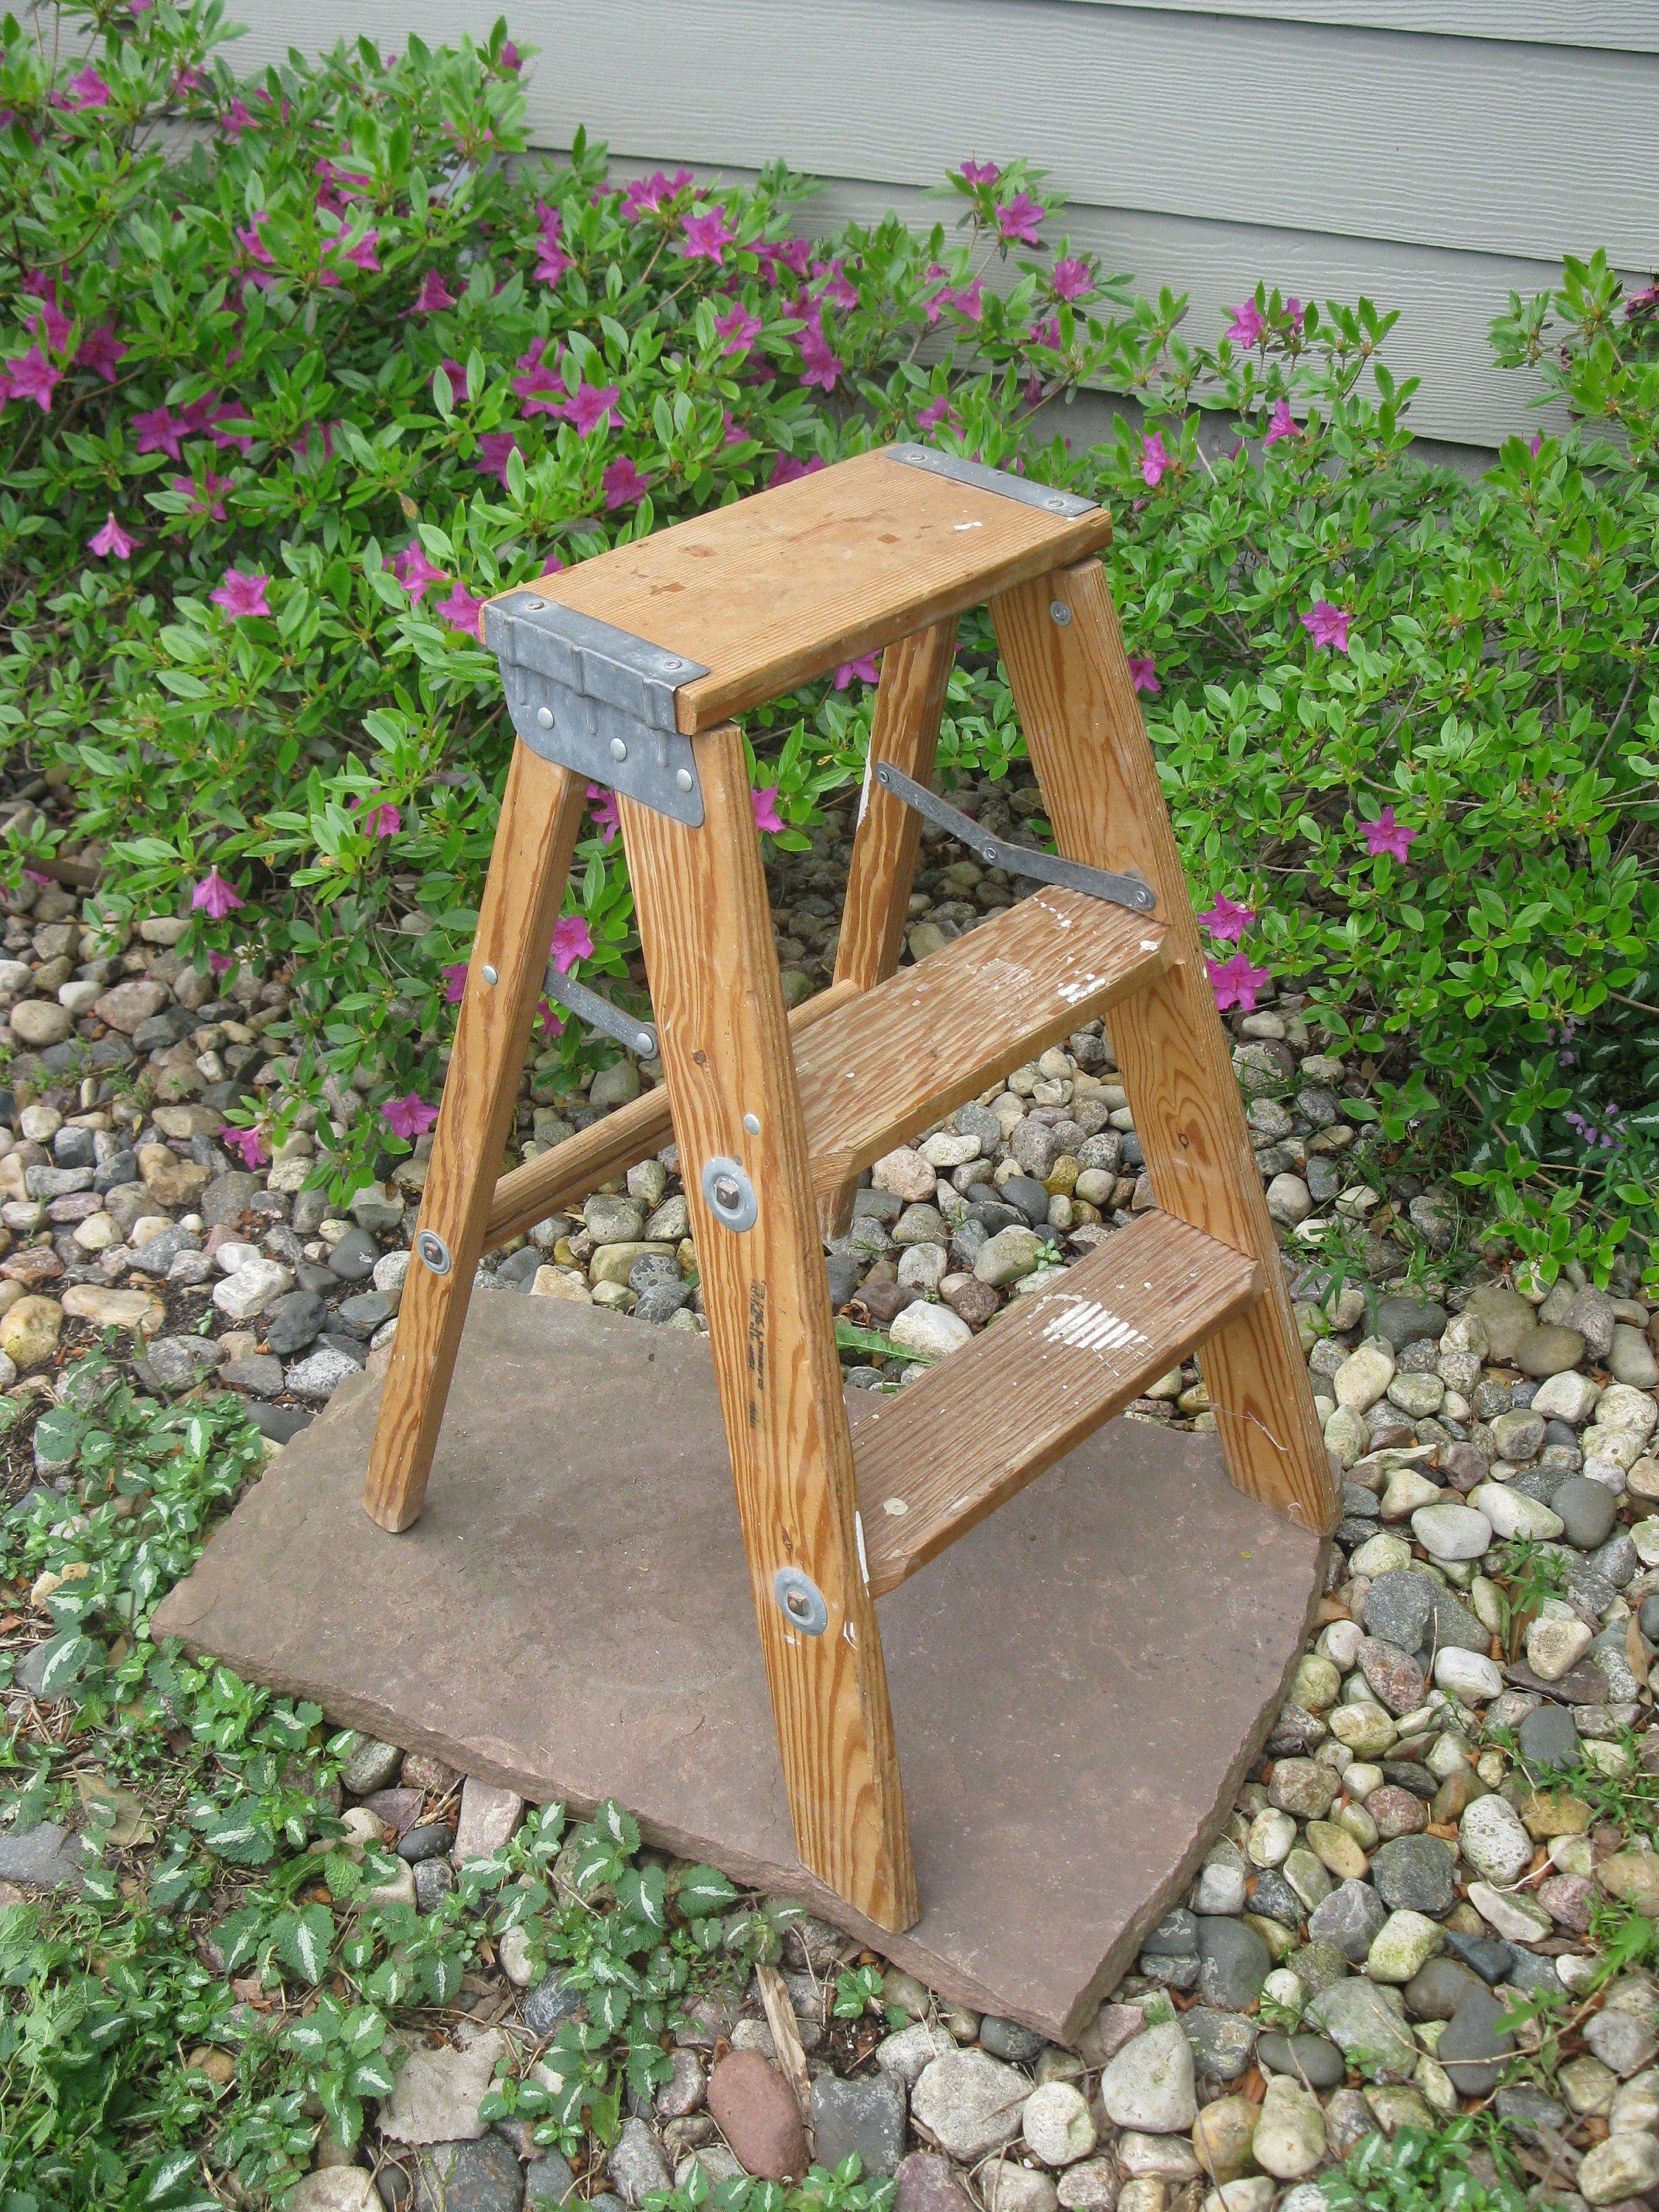 Vintage Wooden Step Ladder Step Stool Folding Ladder Plant Stand Shabby Primitive Distressed Wood Paint Lad How To Distress Wood Step Stool Wooden Steps